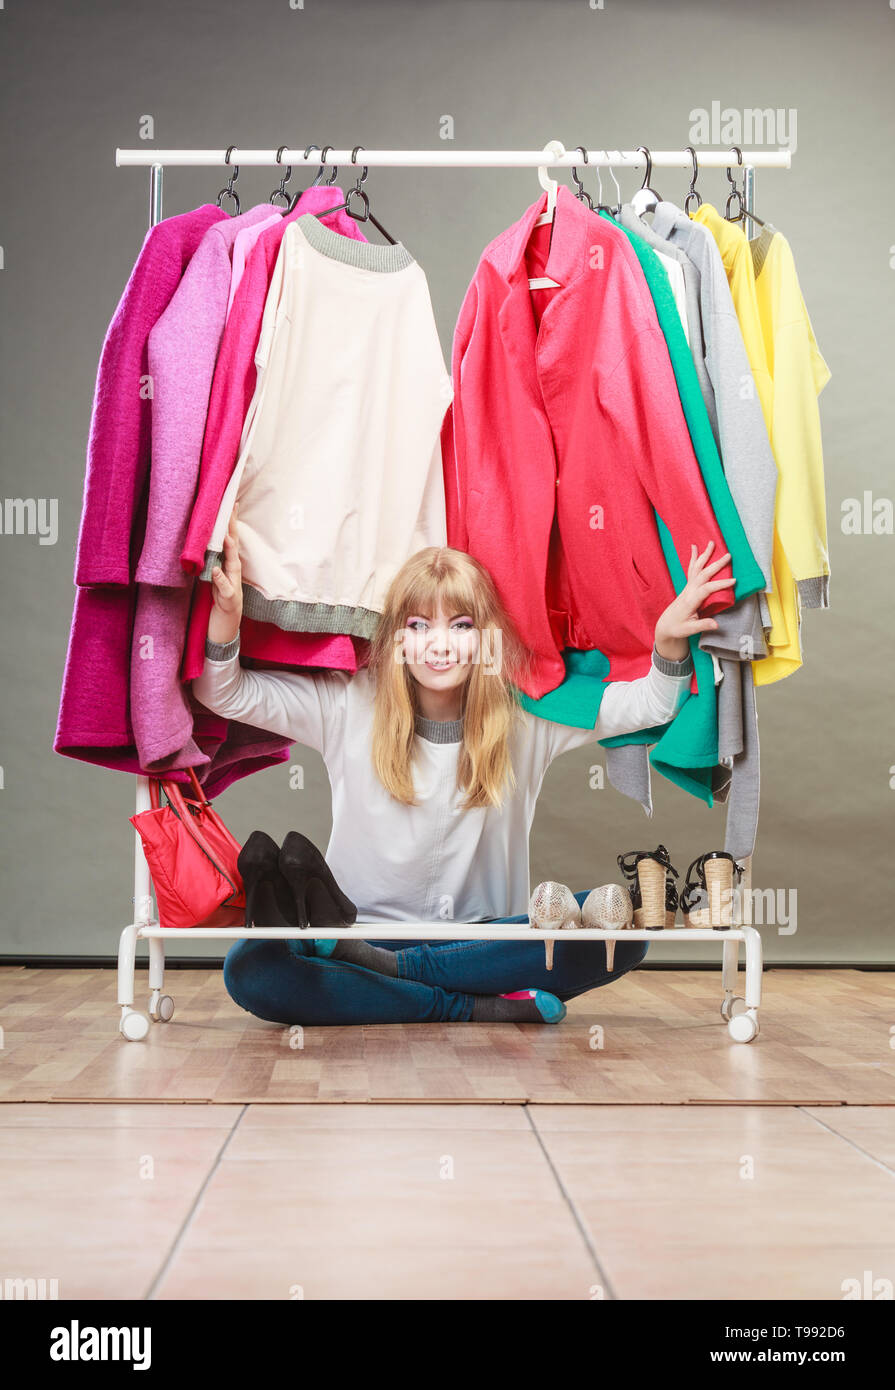 Pretty woman sitting under clothing from wardrobe. Young happy undecided shopper girl bought new clothes. Shopaholic concept. - Stock Image